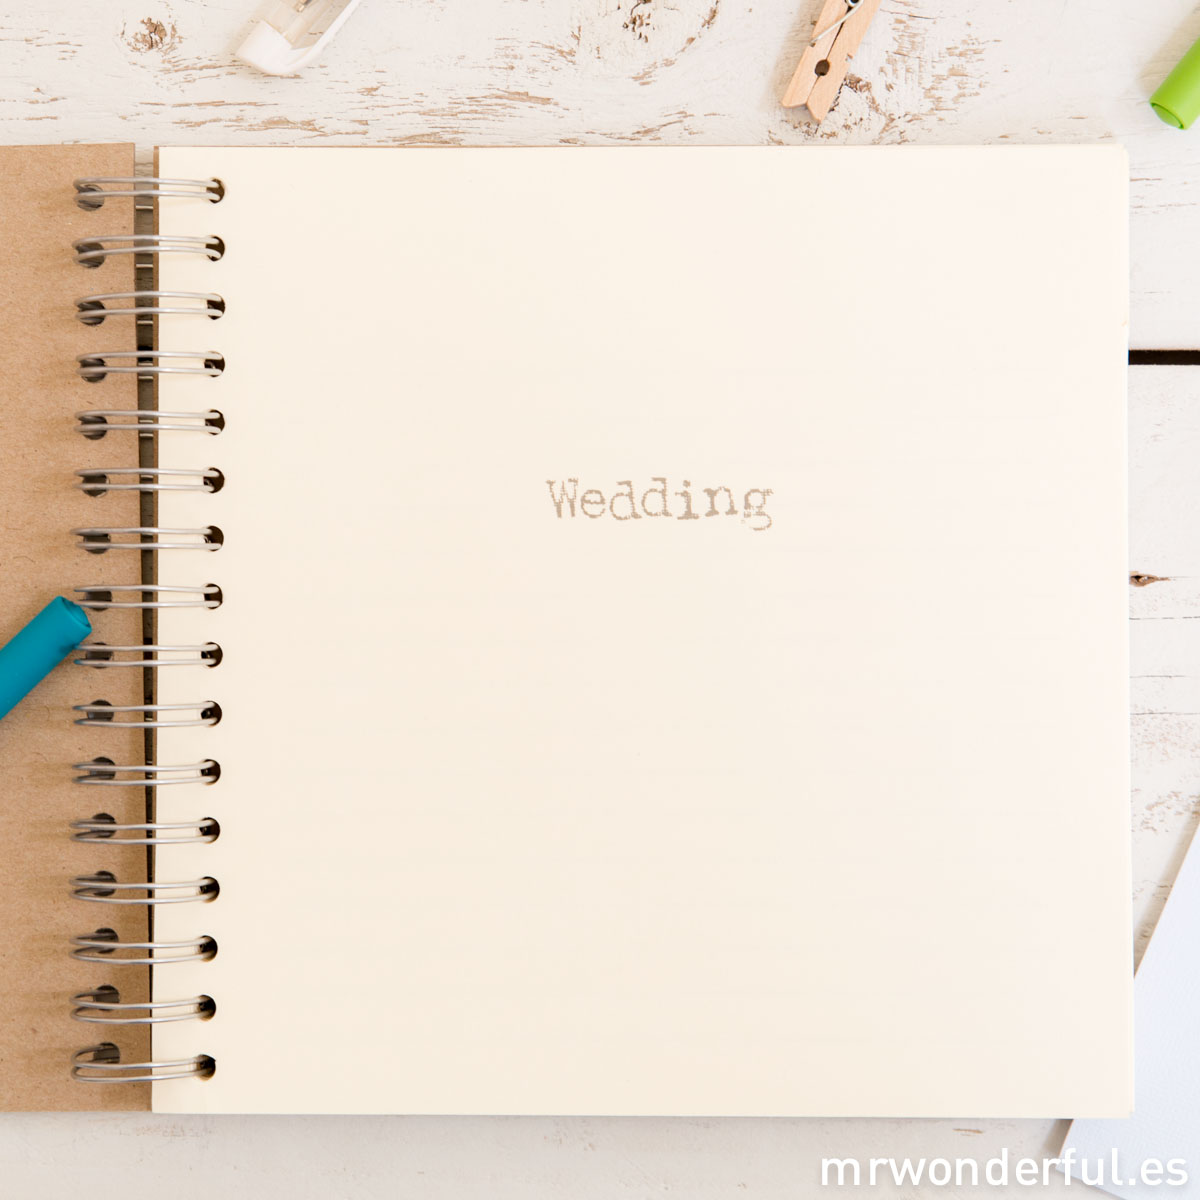 mrwonderful_1759_album-scrapbook_wedding-planner-6